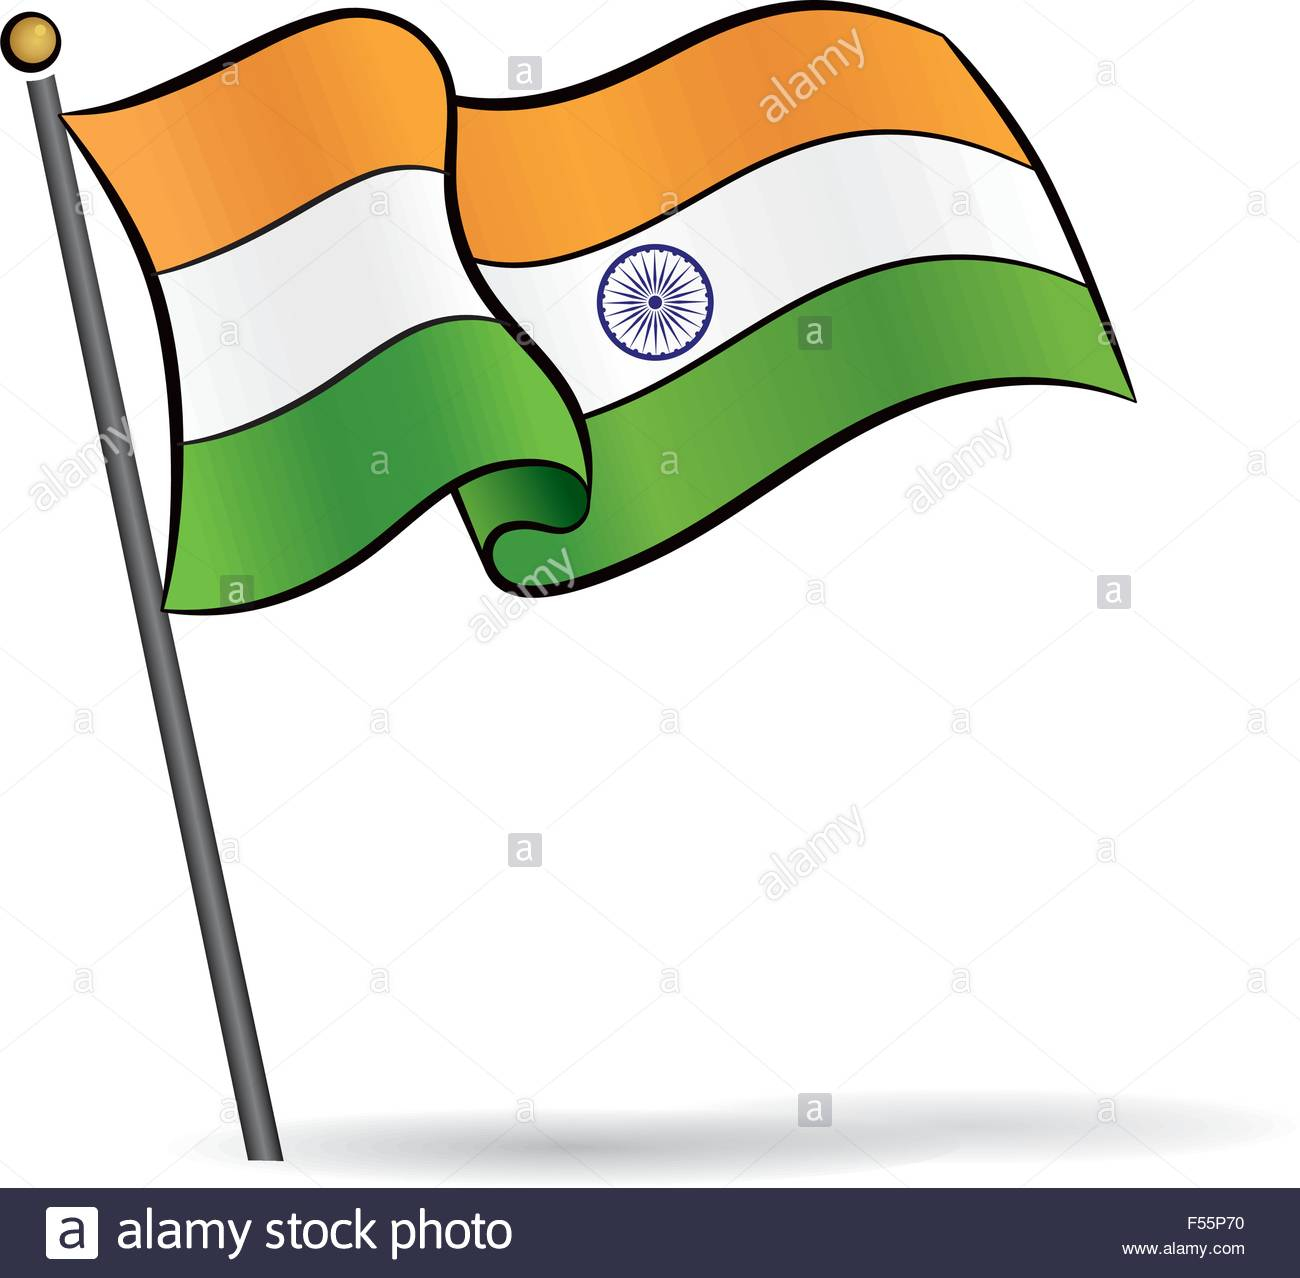 Online Photo Editor With Indian Flag Background ✓ Satu Sticker